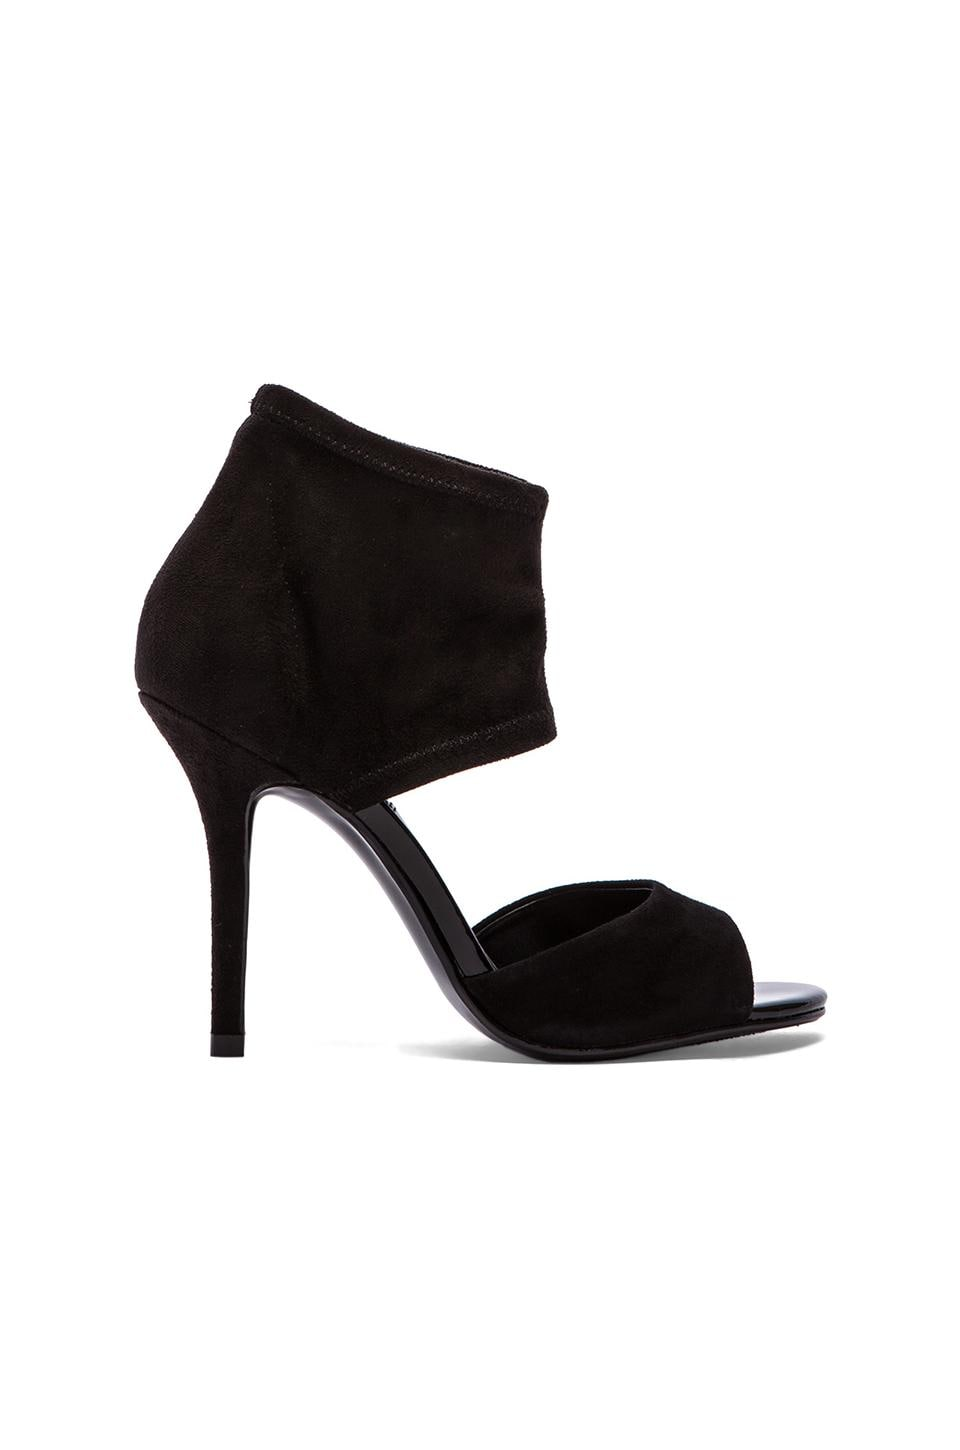 Steve Madden Lift Off Heel in Black Suede